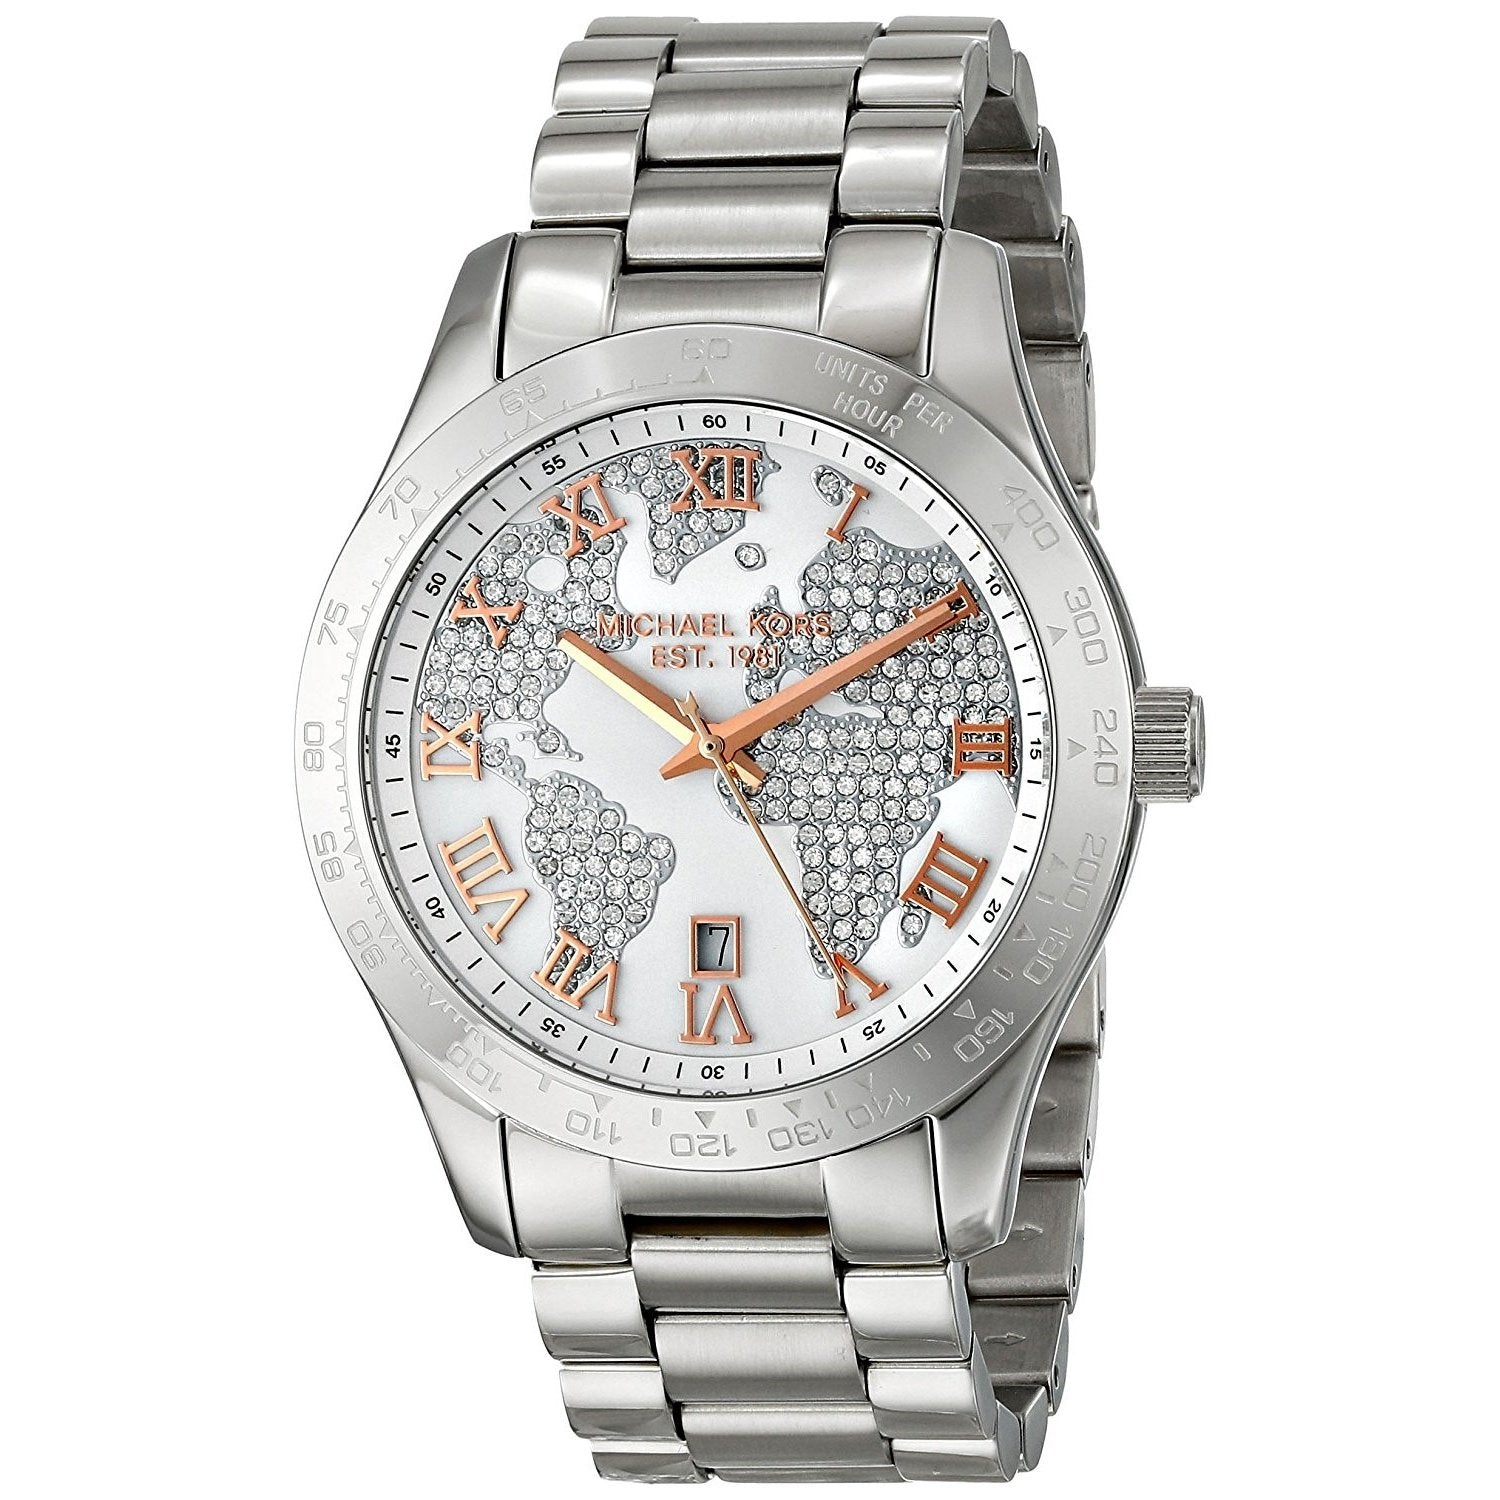 Michael Kors Women's MK5958 'Layton' Crystal Map Stainless Steel Watch